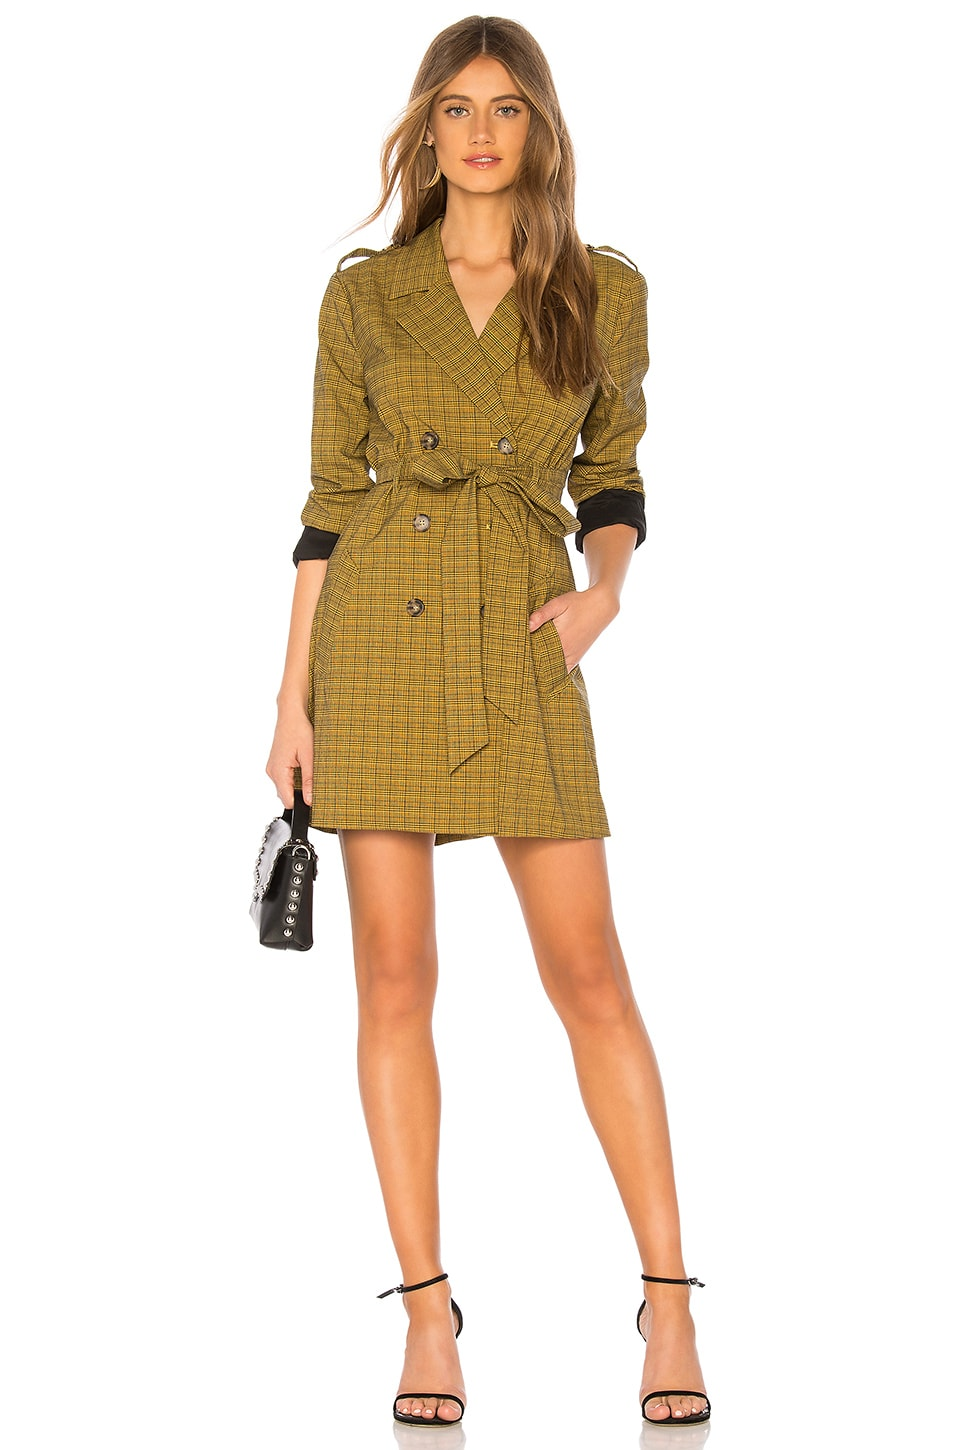 L'Academie The Milena Mini Dress in Yellow Plaid